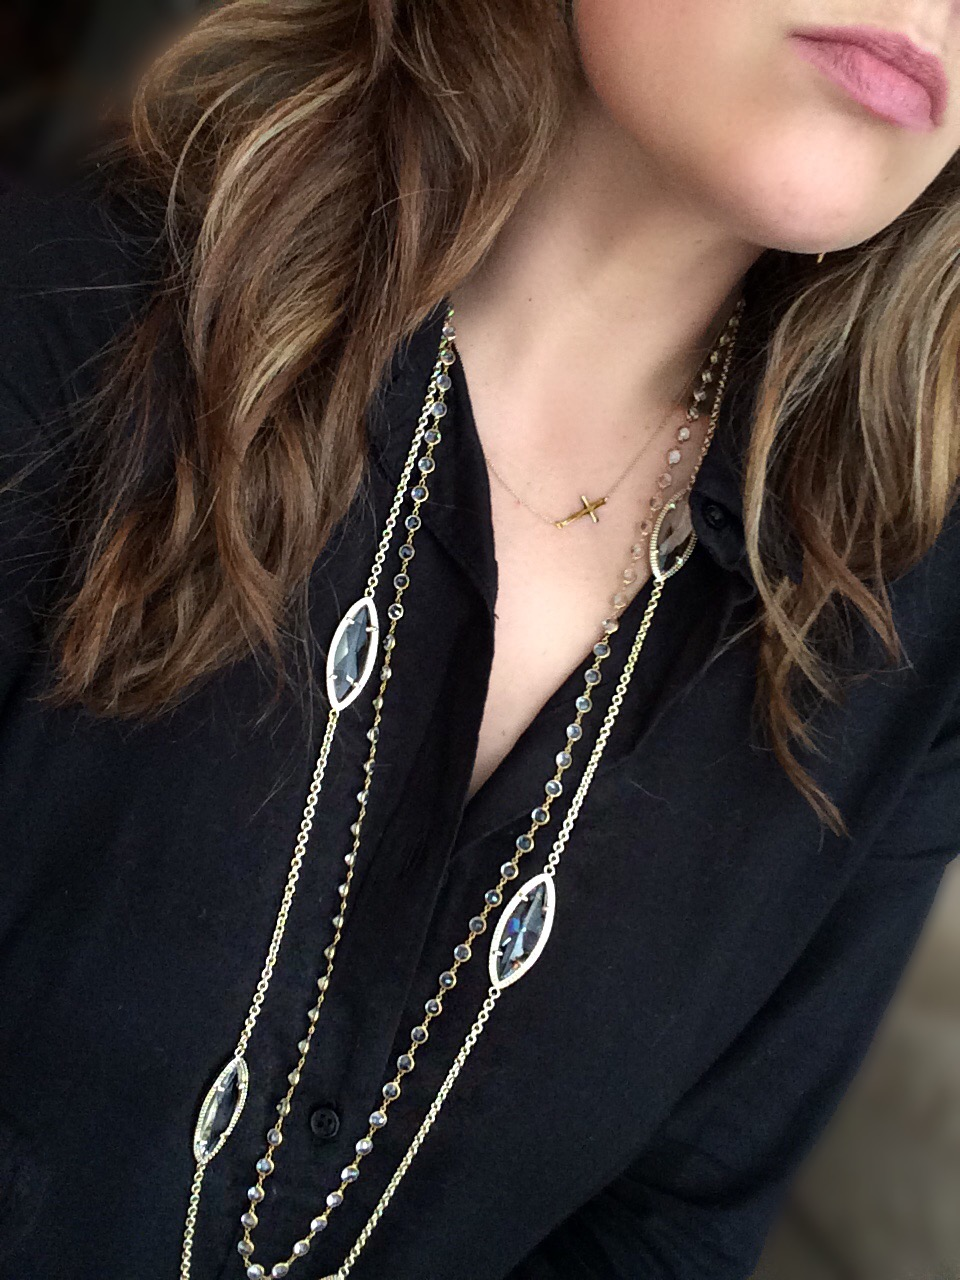 When layering necklaces, varying lengths is key, even if they are just an inch or two apart in length. The marquis shaped Kendra Scott necklace has translucent stones (similar style on SALE  here ) that compliments the white topaz Anu chain (no longer available), without being too matchy-matchy.